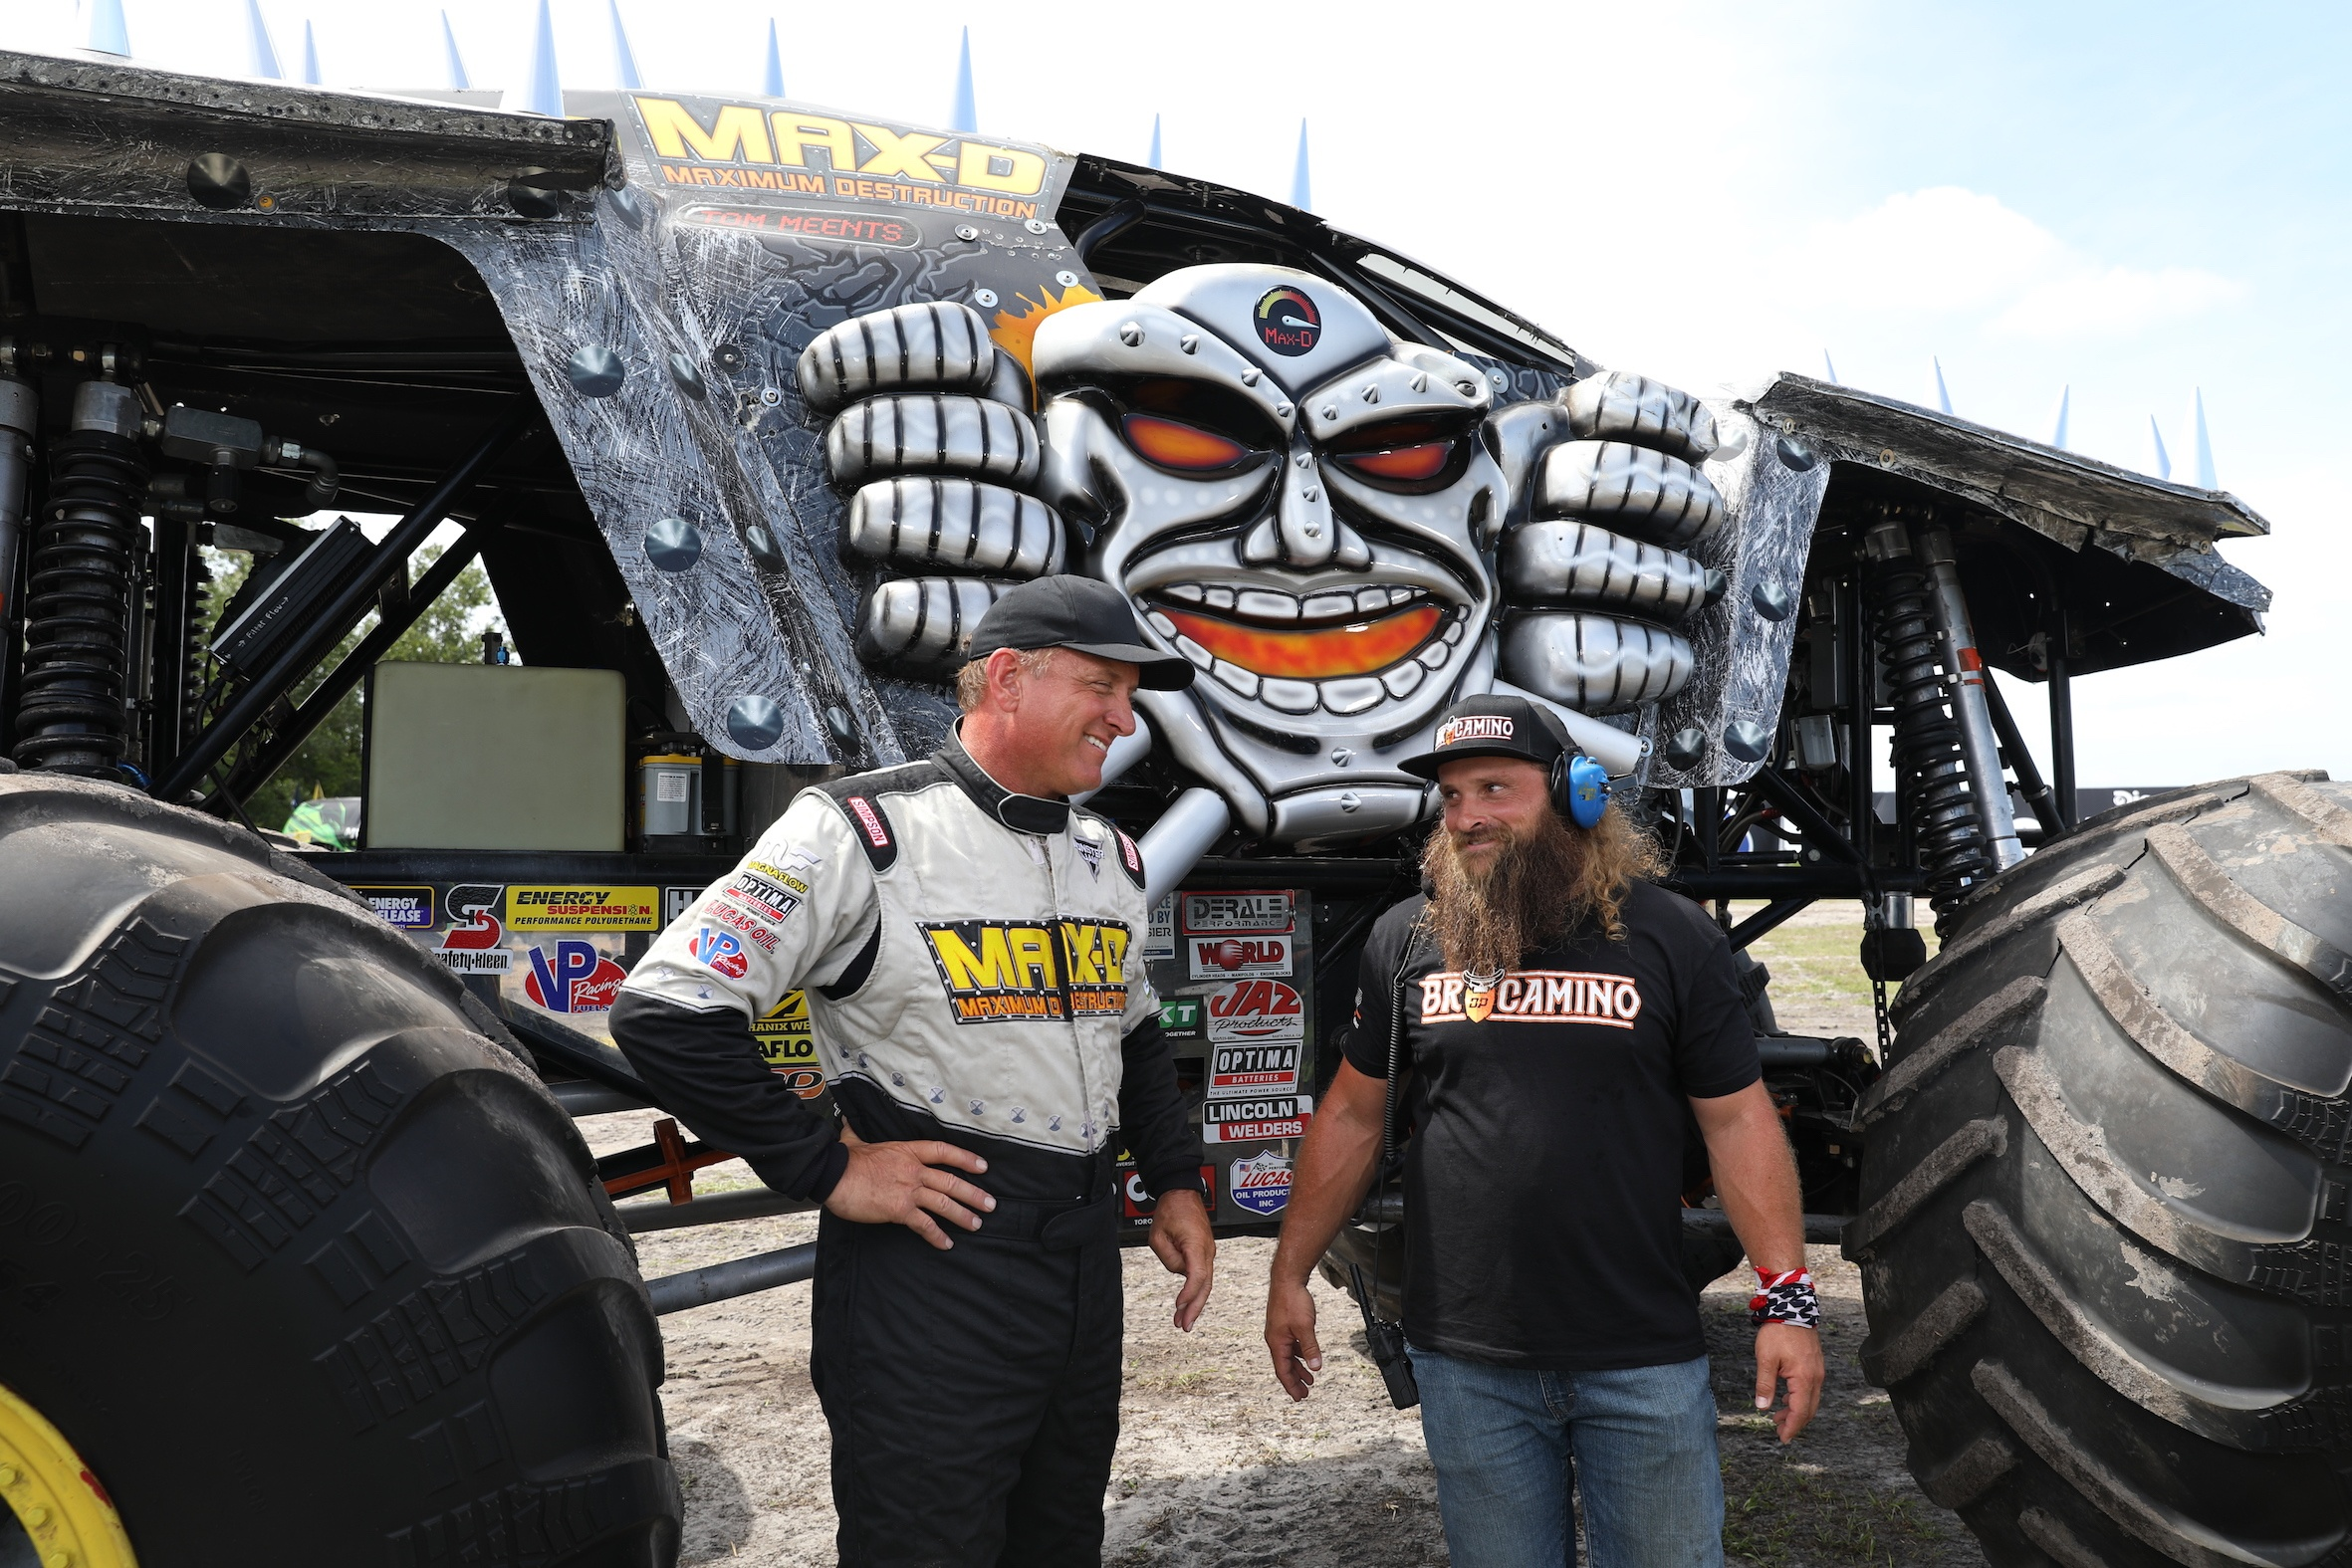 """Bkt and the motor show in the  """"diesel brothers: monster jam® breaking world records"""""""